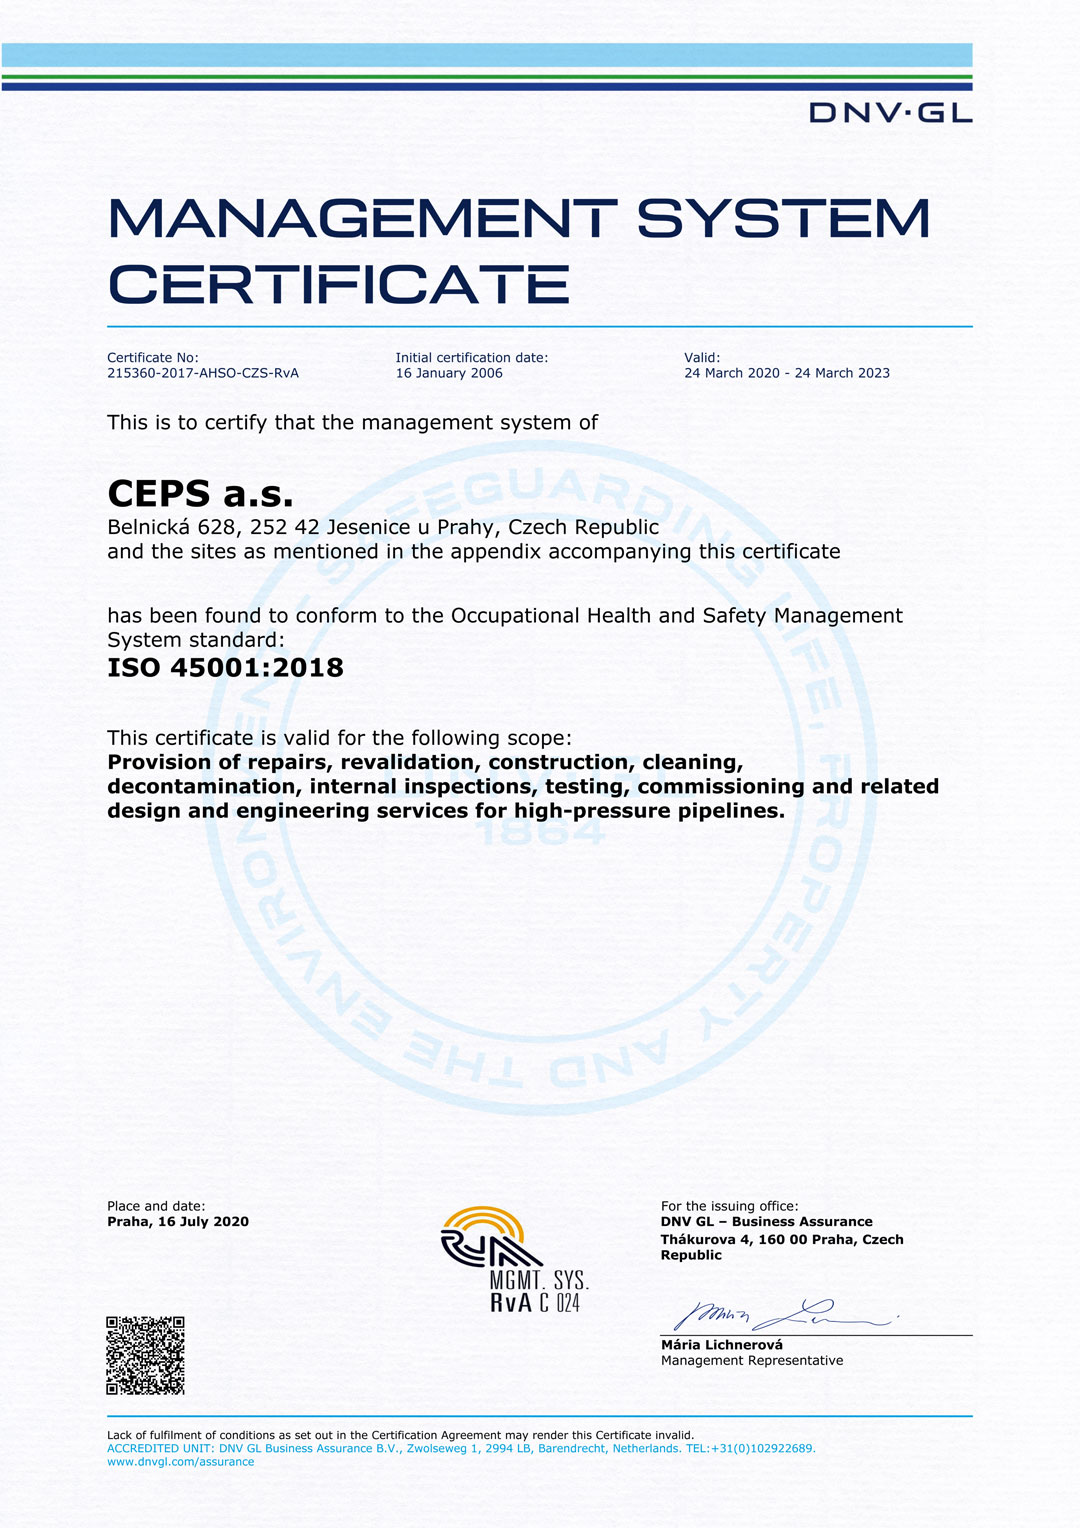 iso certificate management safety dnv ceps ahso czs rva occupational verify gl